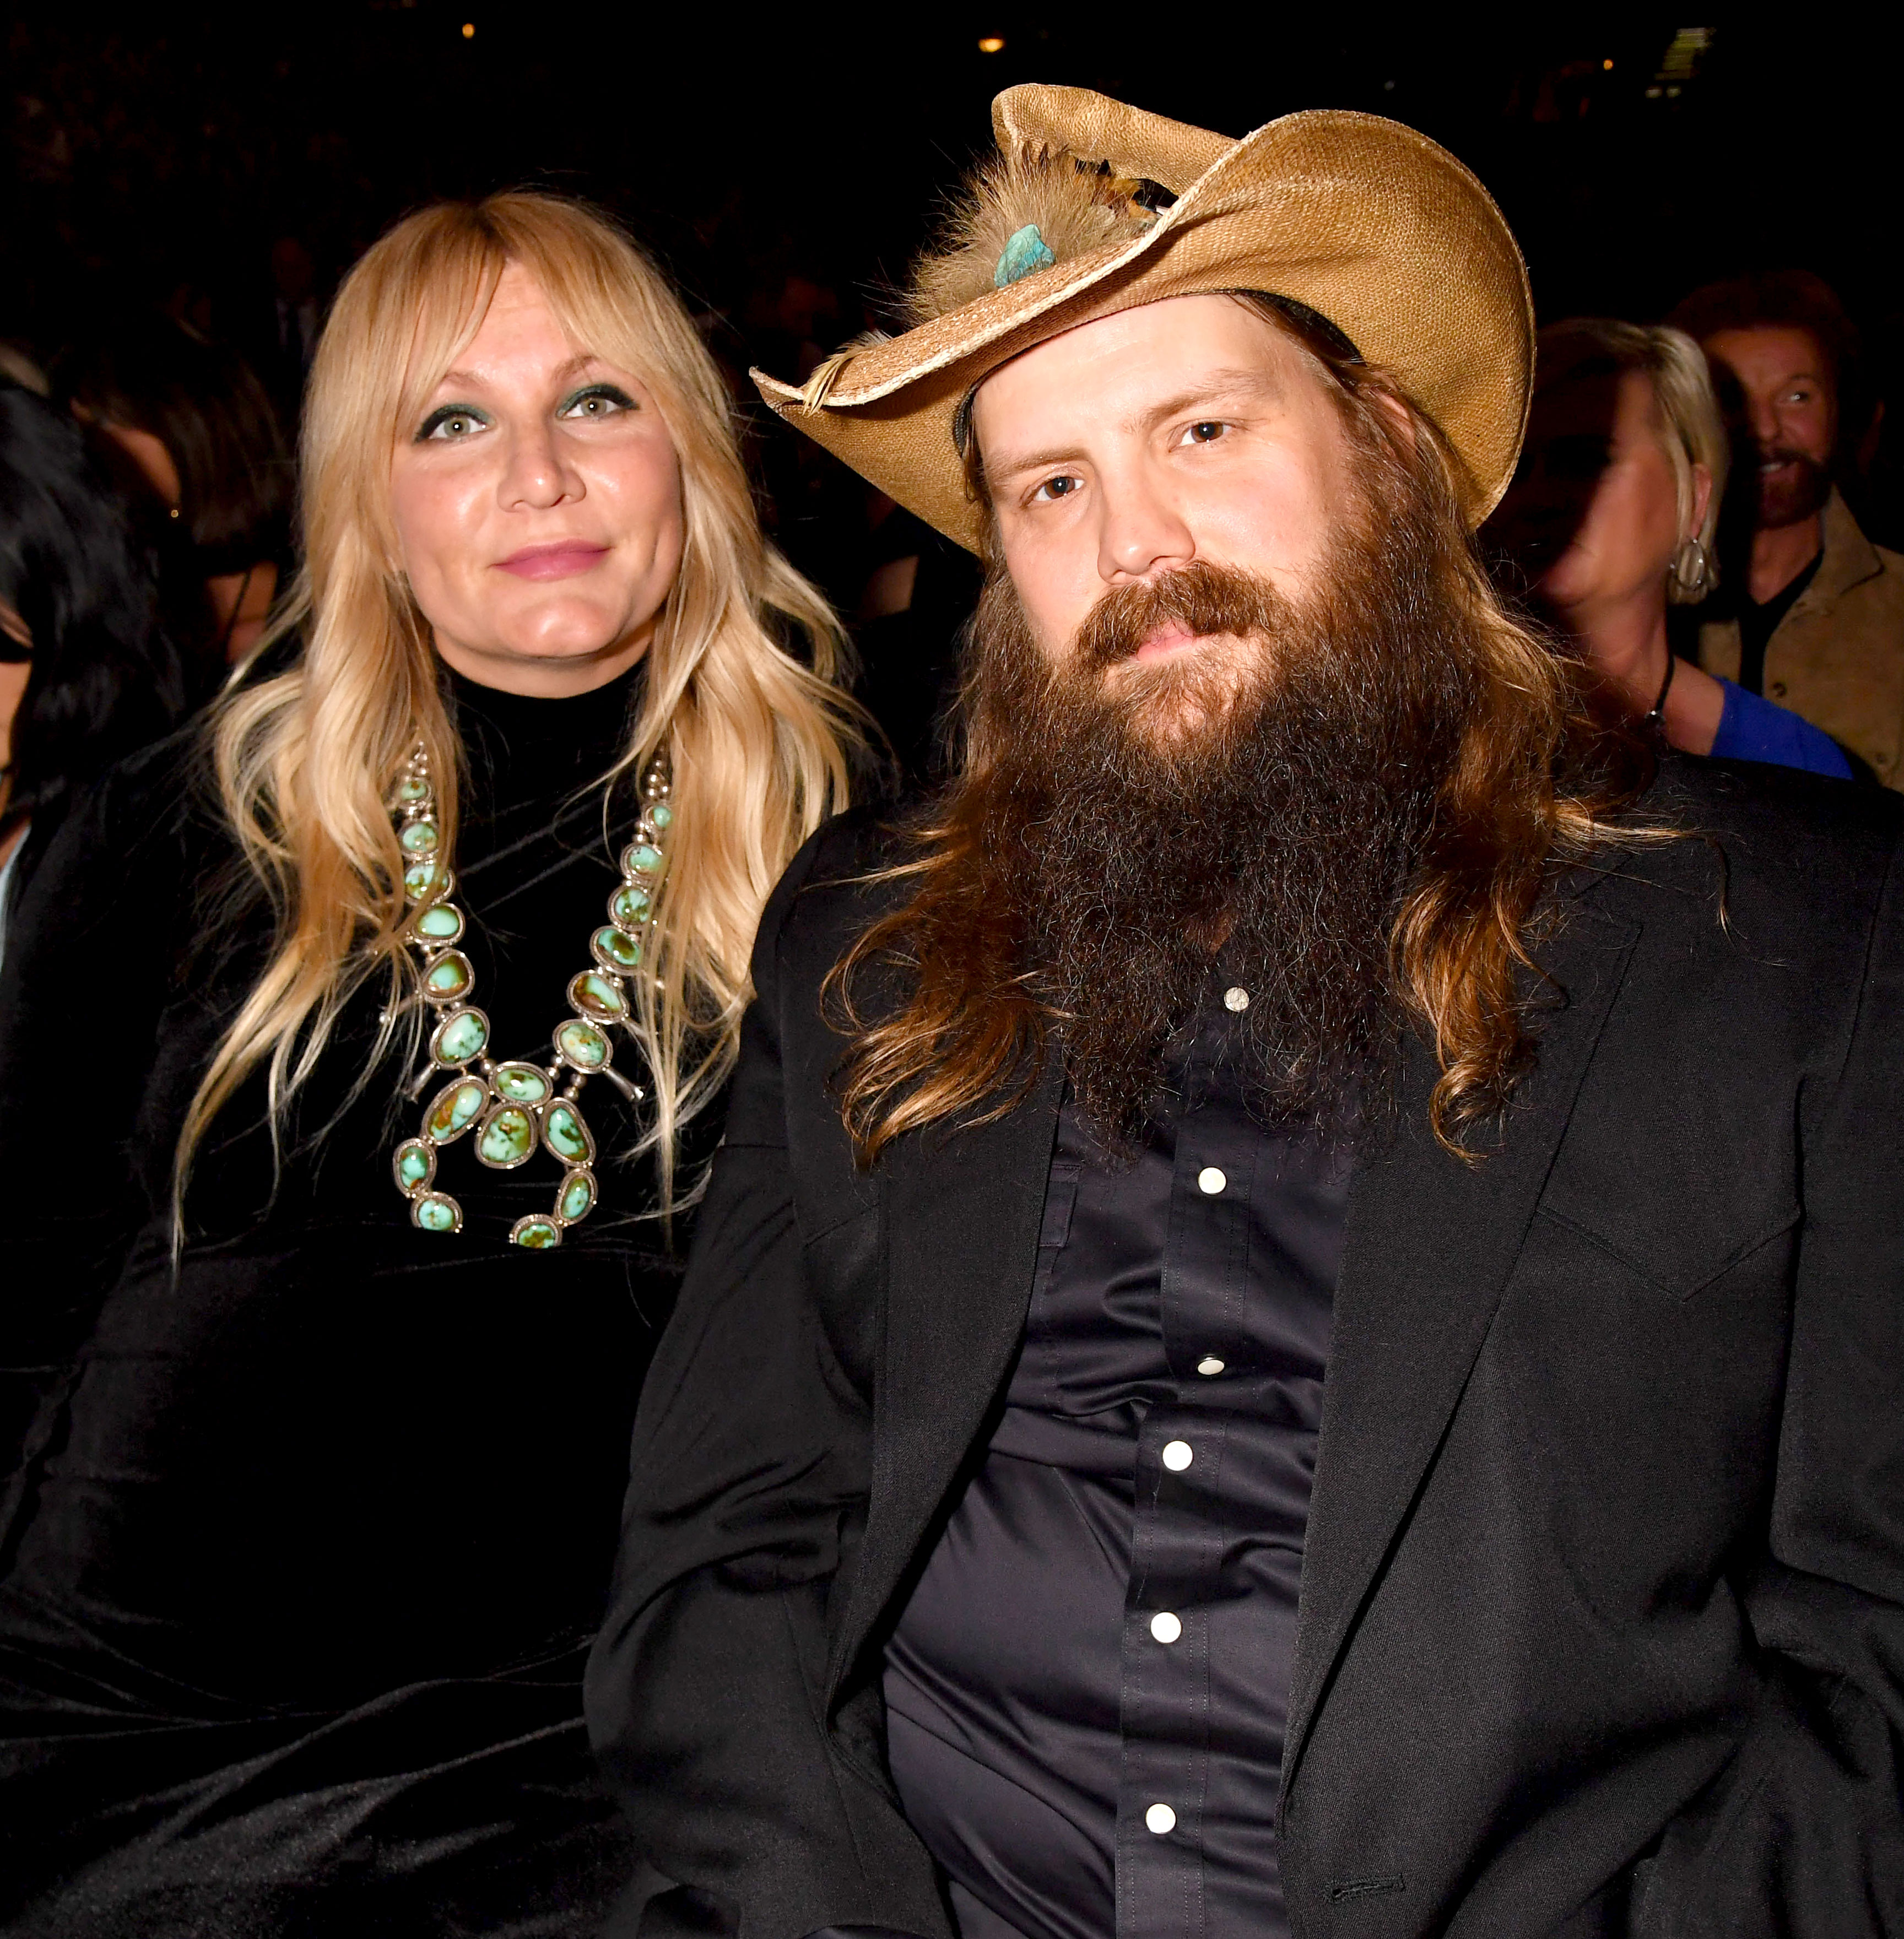 Chris Stapleton's Wife Morgane Gives Birth to Their Fifth Child Together - Morgane Stapleton and Chris Stapleton during the 54th Academy Of Country Music Awards at MGM Grand Garden Arena on April 07, 2019 in Las Vegas, Nevada.